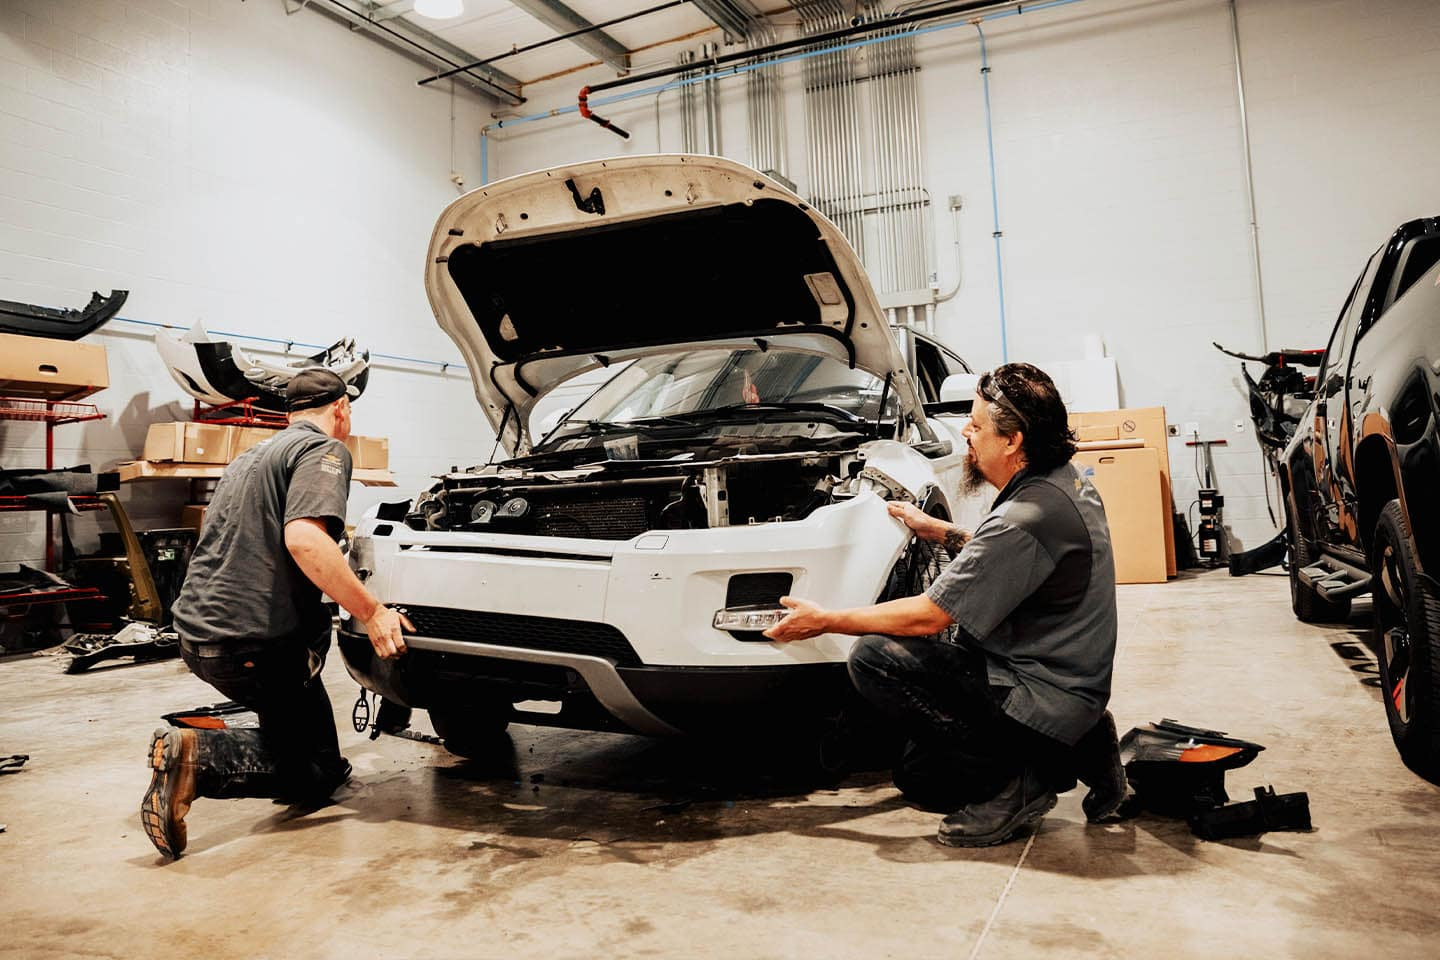 Uftring Body Shop Image - Uftring Certified Staff repair a vehicles front grill